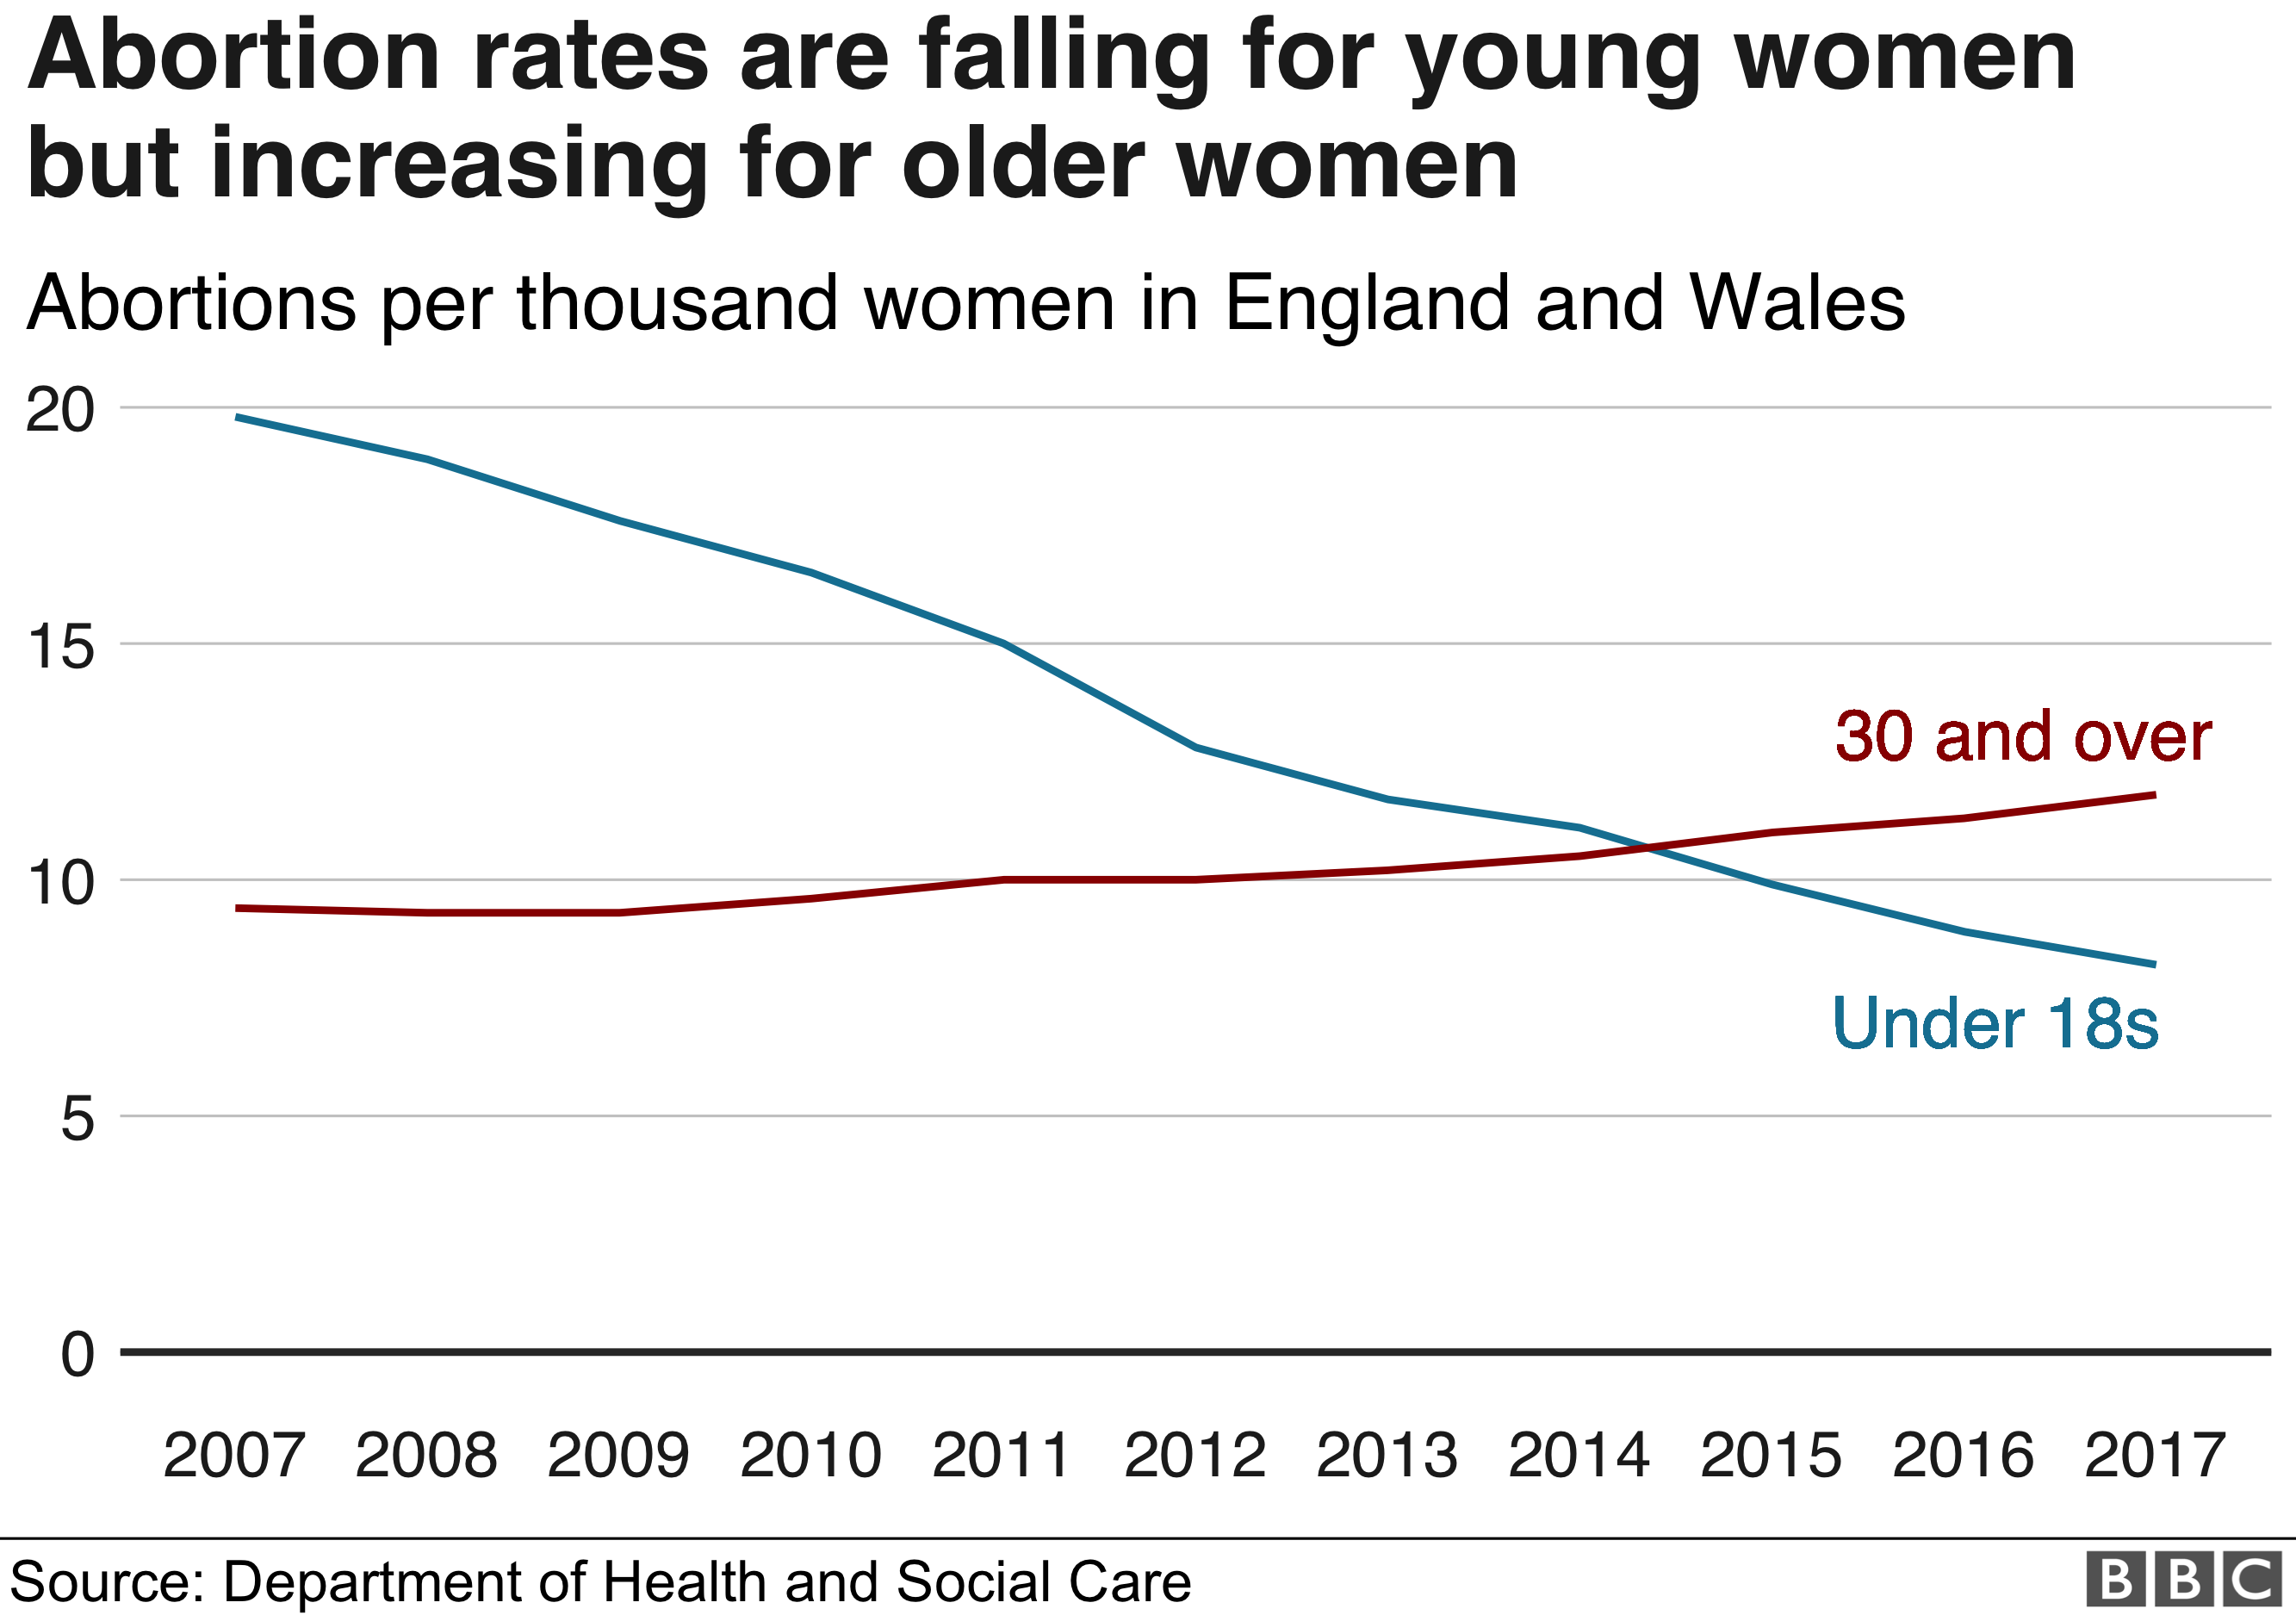 Abortion rates are falling for young women but rising among those 30 and over